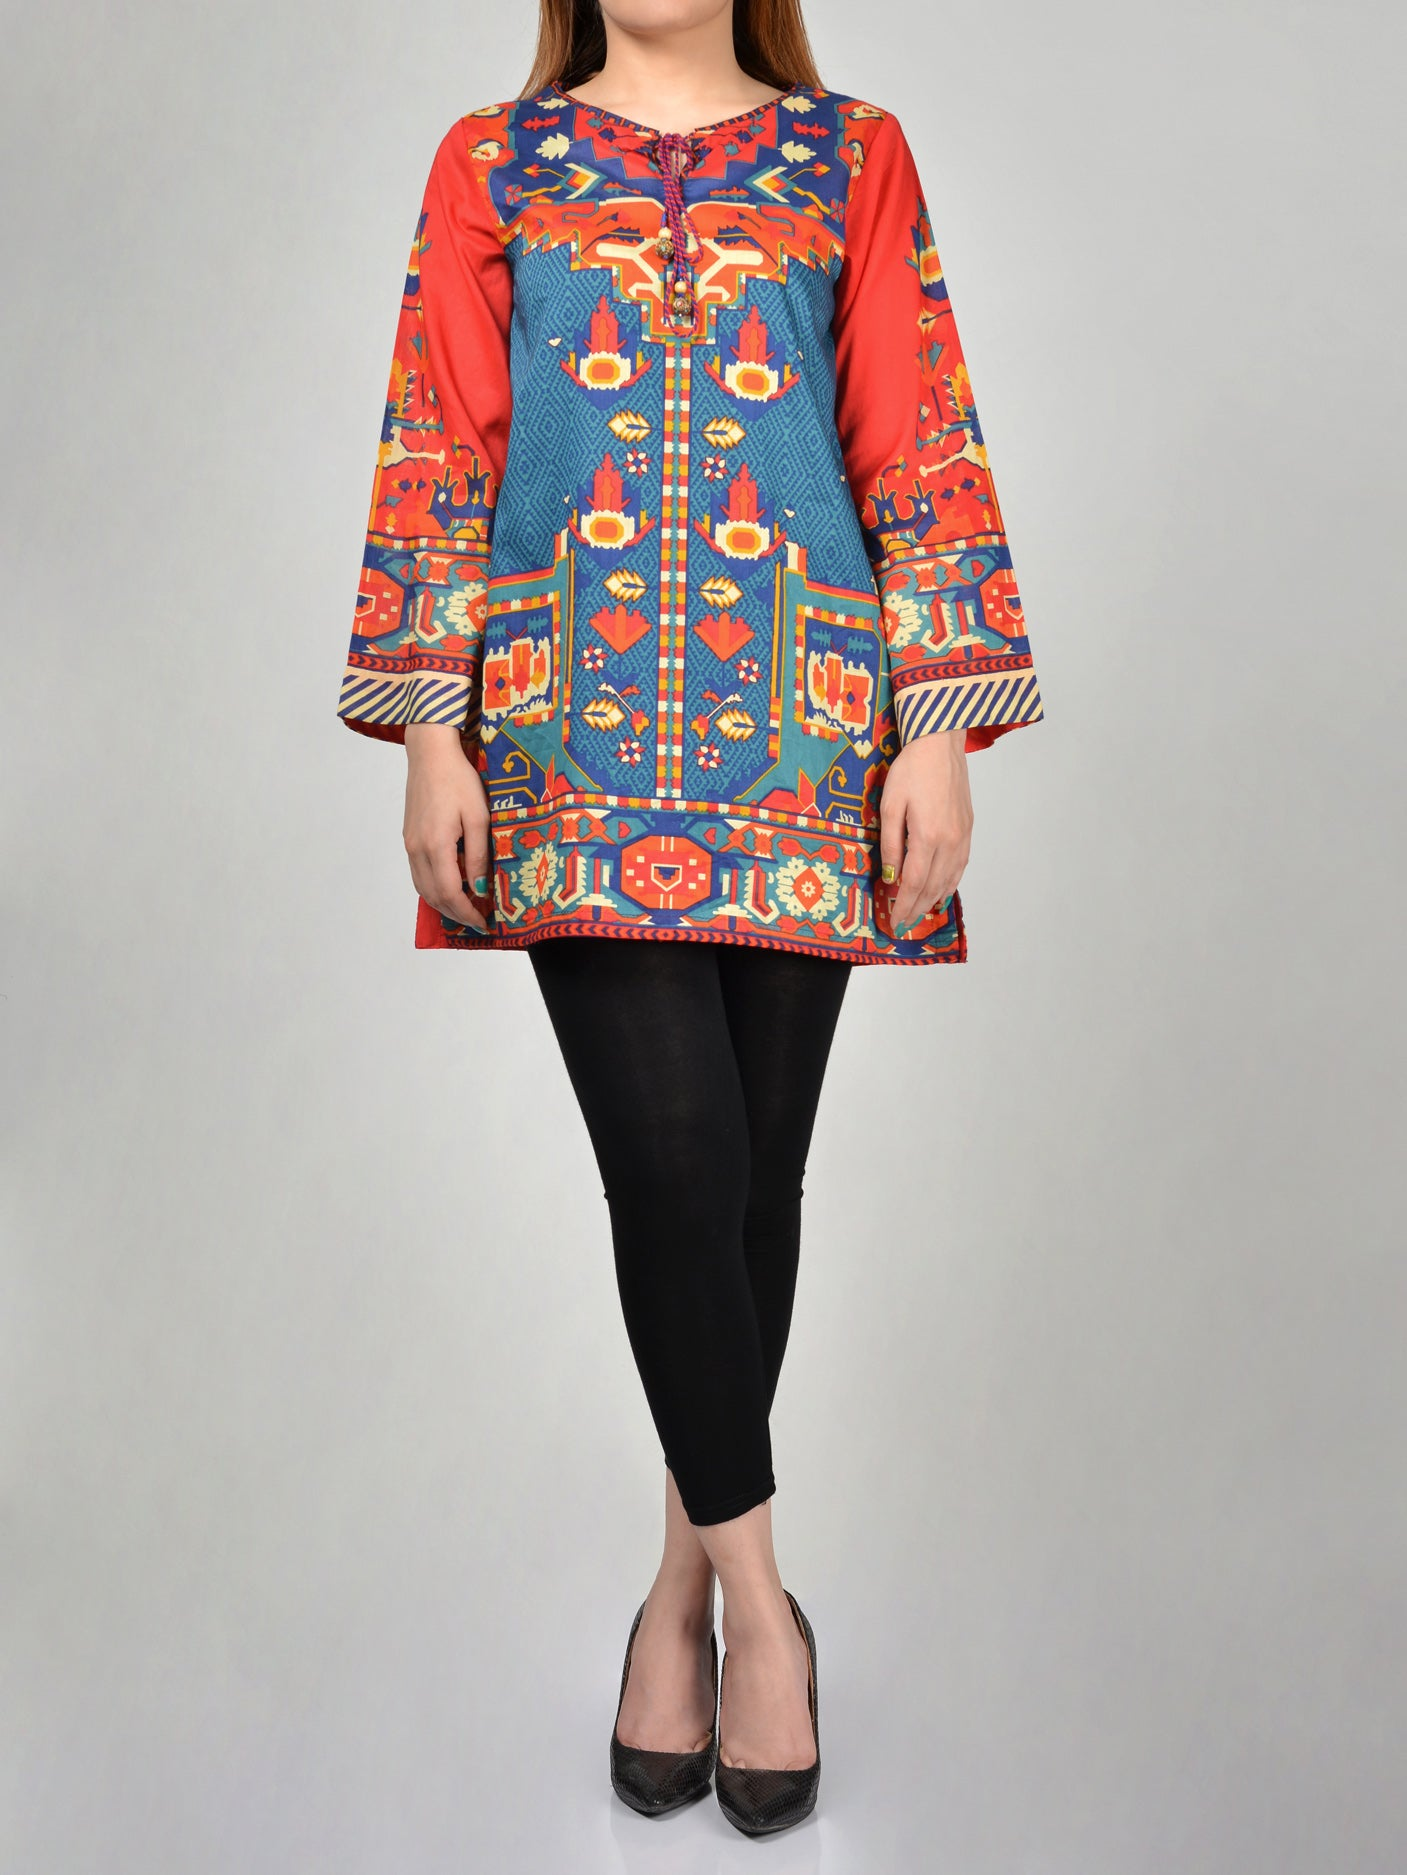 Printed Lawn Shirts Online P0177